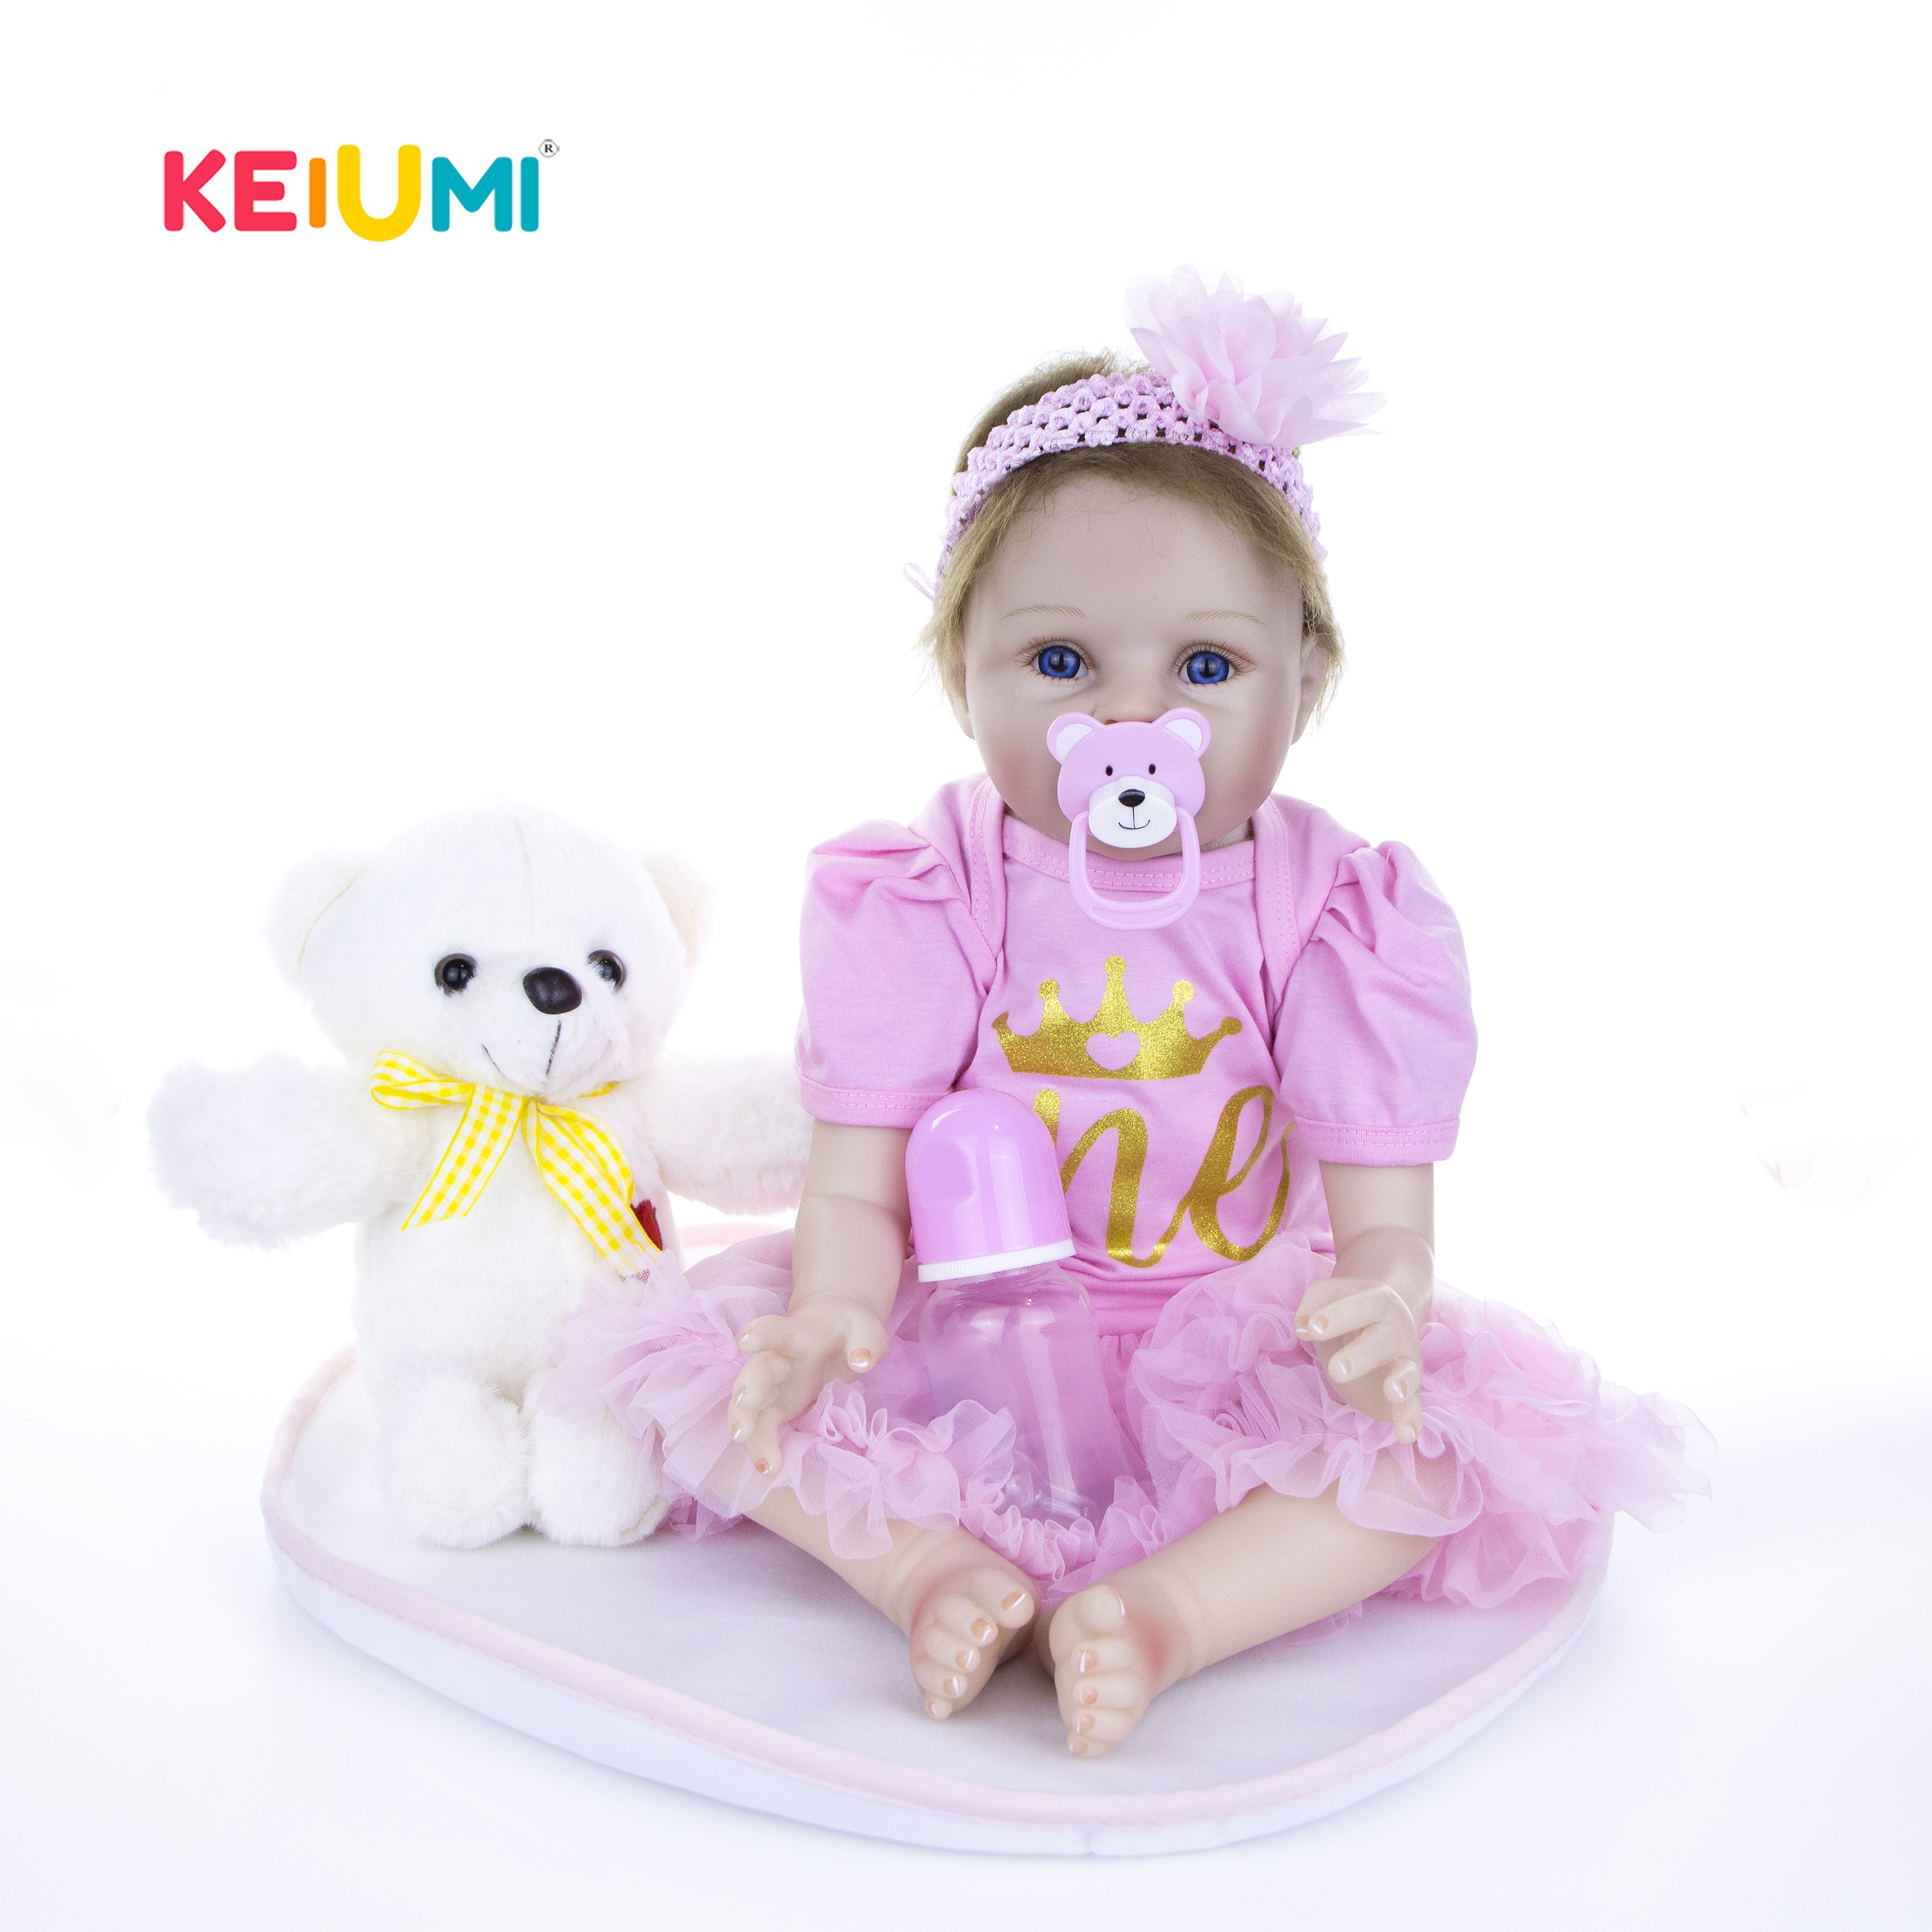 22 Inch Lifelike Reborn Girl Baby Dolls Real Looking Silicone Soft Fashion Princess Newborn Babies Doll For Kids Play House Toy22 Inch Lifelike Reborn Girl Baby Dolls Real Looking Silicone Soft Fashion Princess Newborn Babies Doll For Kids Play House Toy